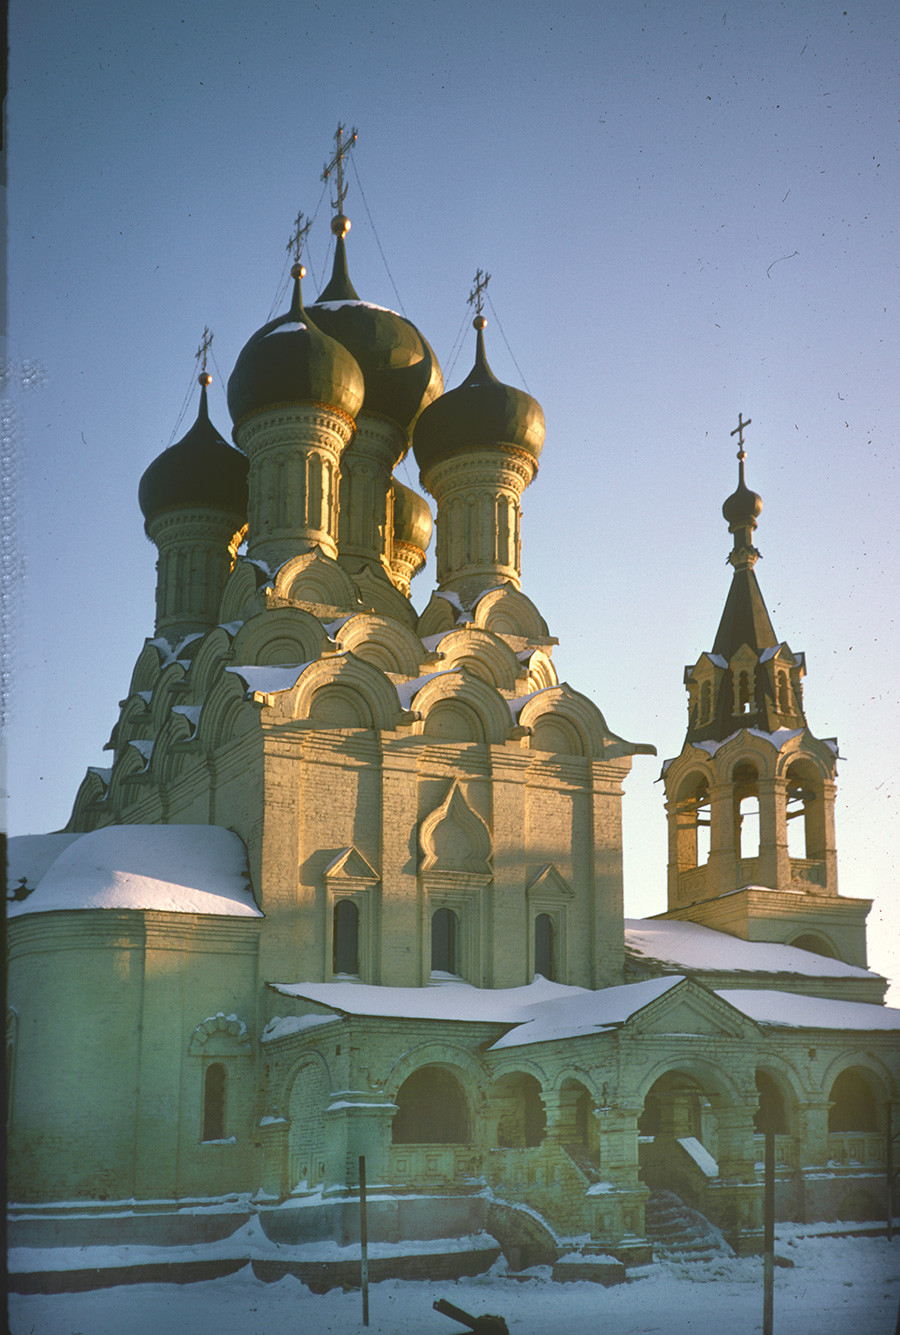 Church of the Dormition, northeast view. March 6, 1972